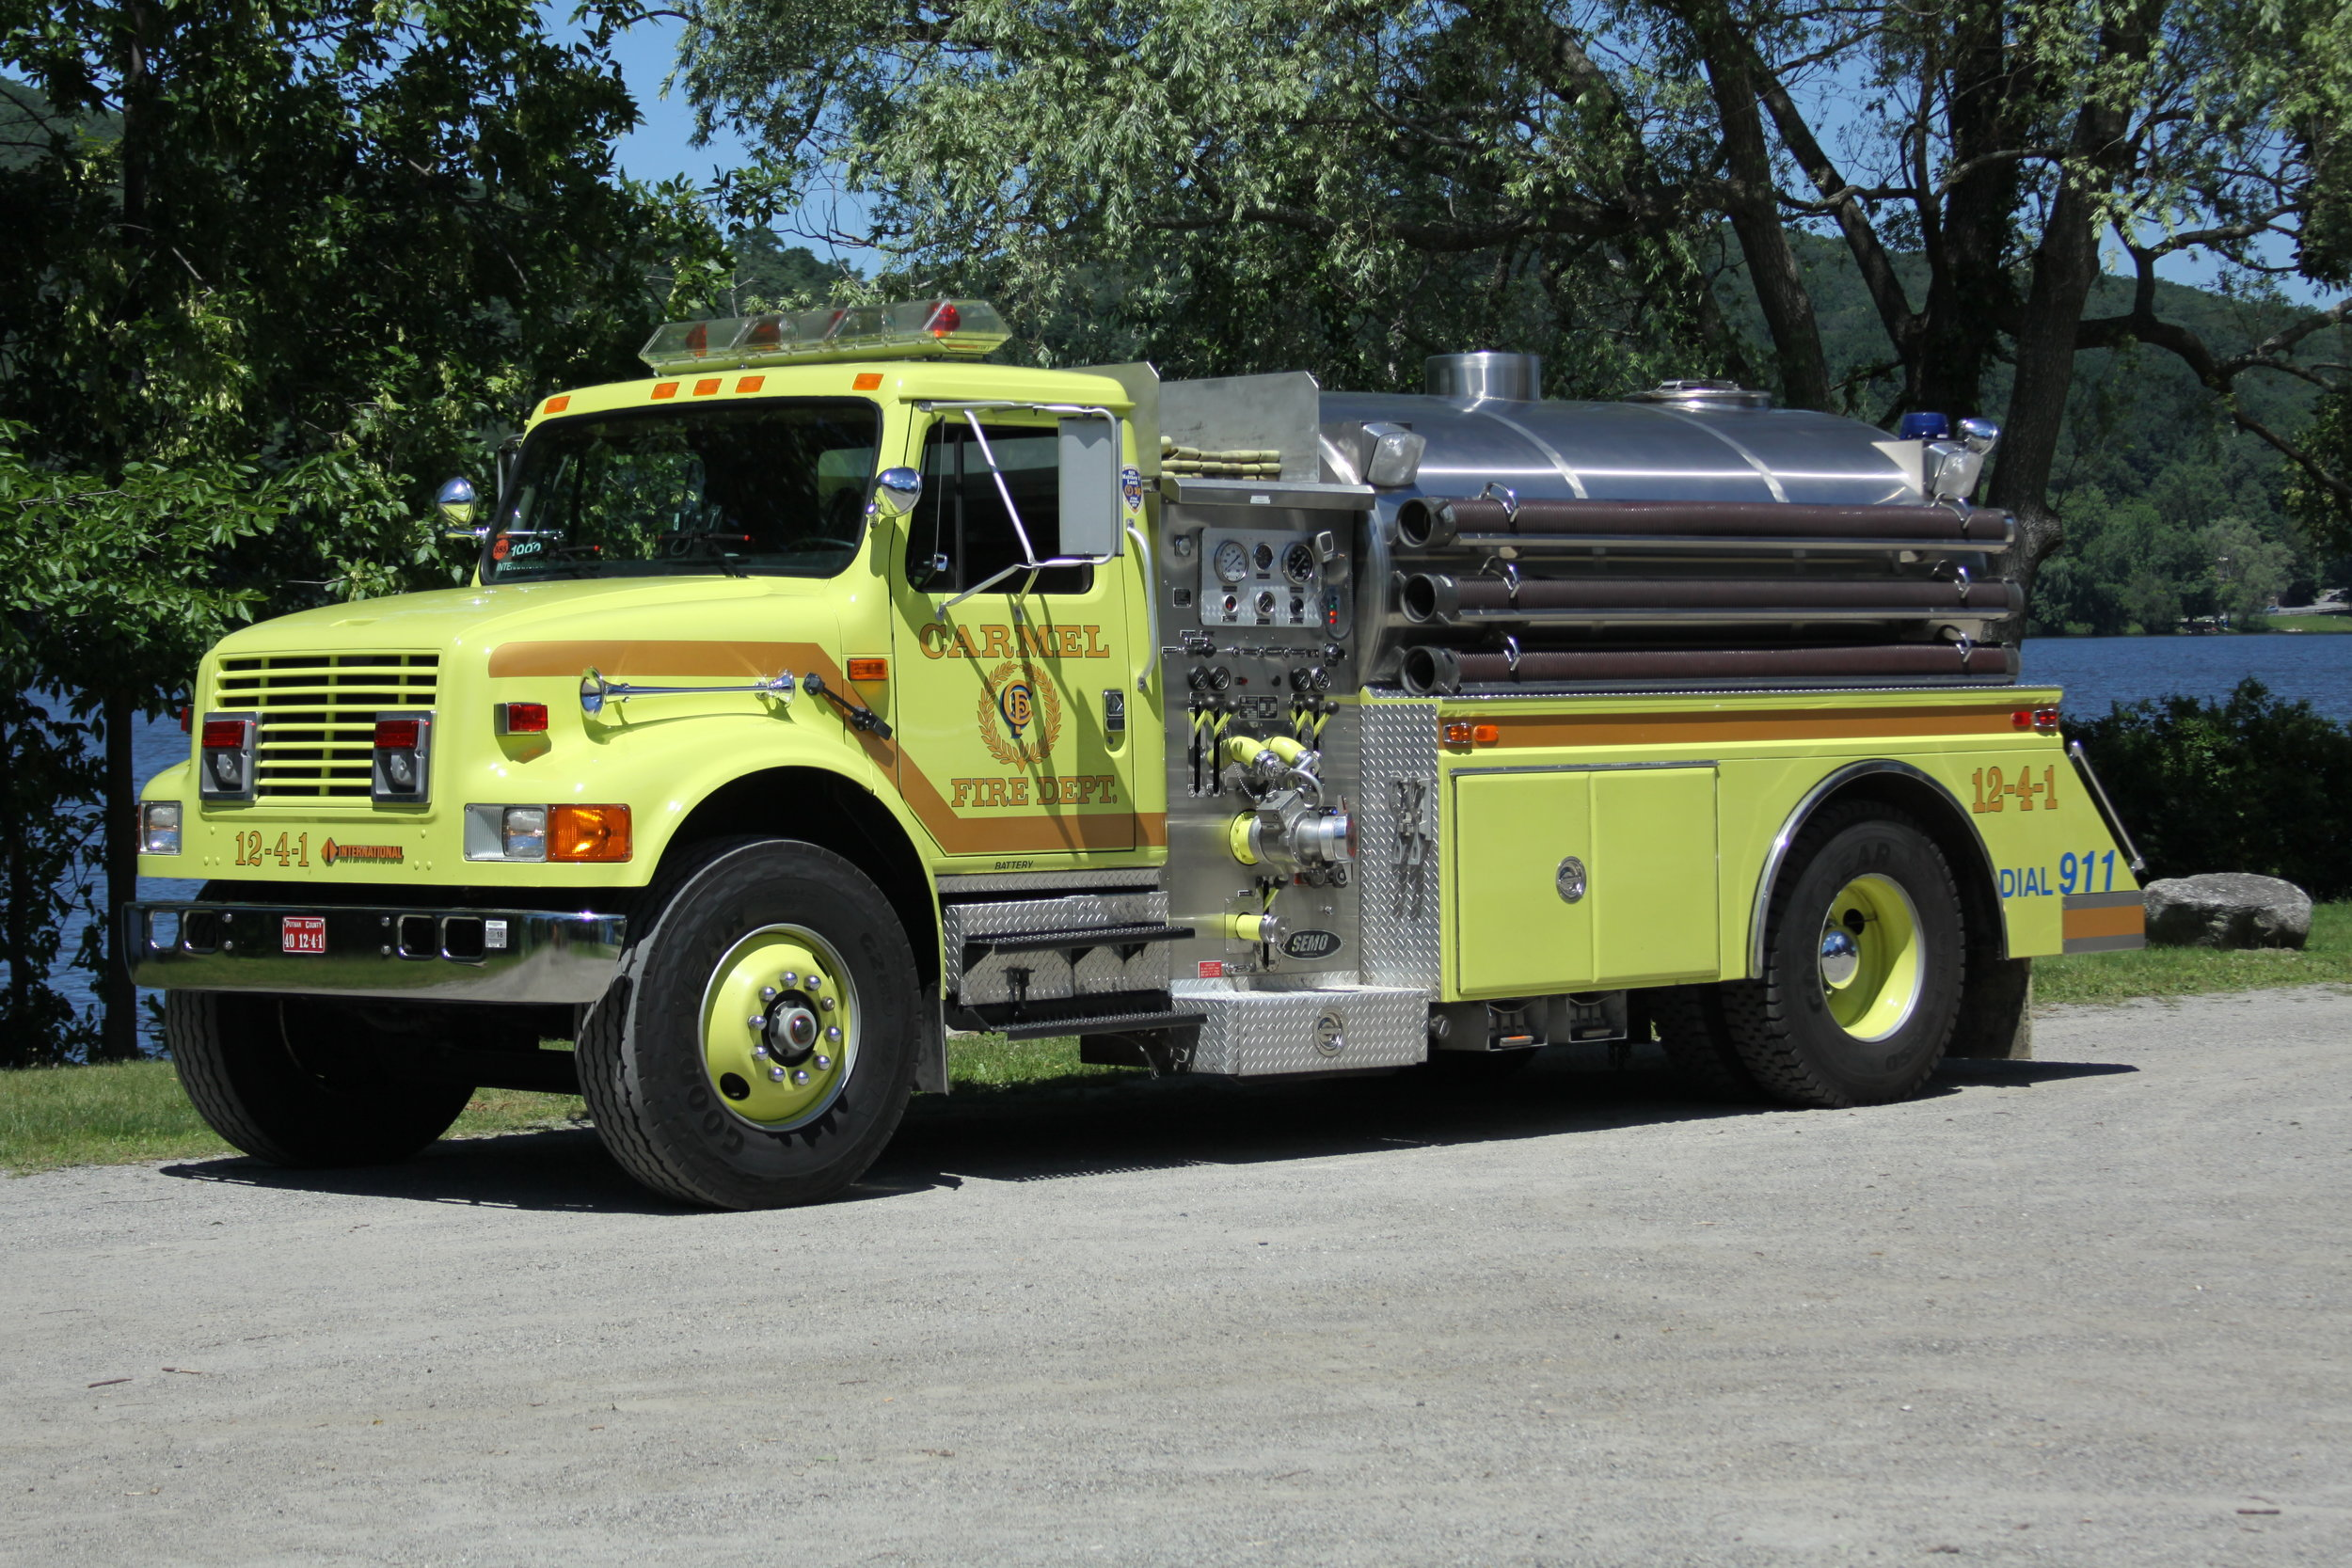 Tanker 12-4-1 - The role of the tanker is to transport water to areas without fire hydrants.